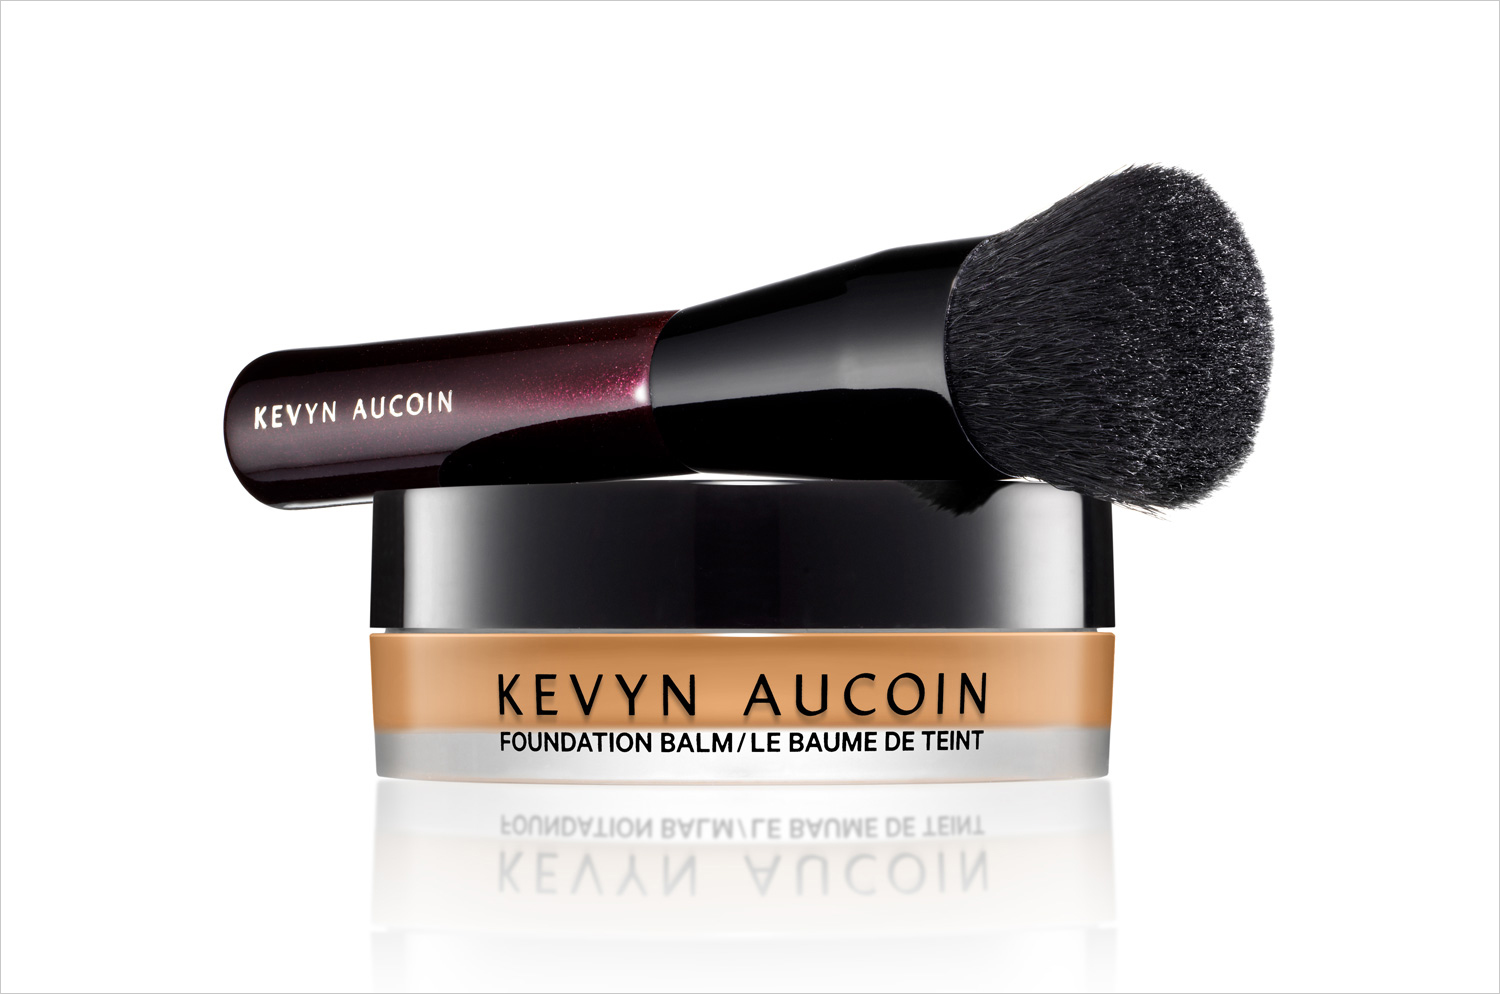 Kevyn Aucoin foundation balm buildable foundation with brush fall beauty wedding ideas